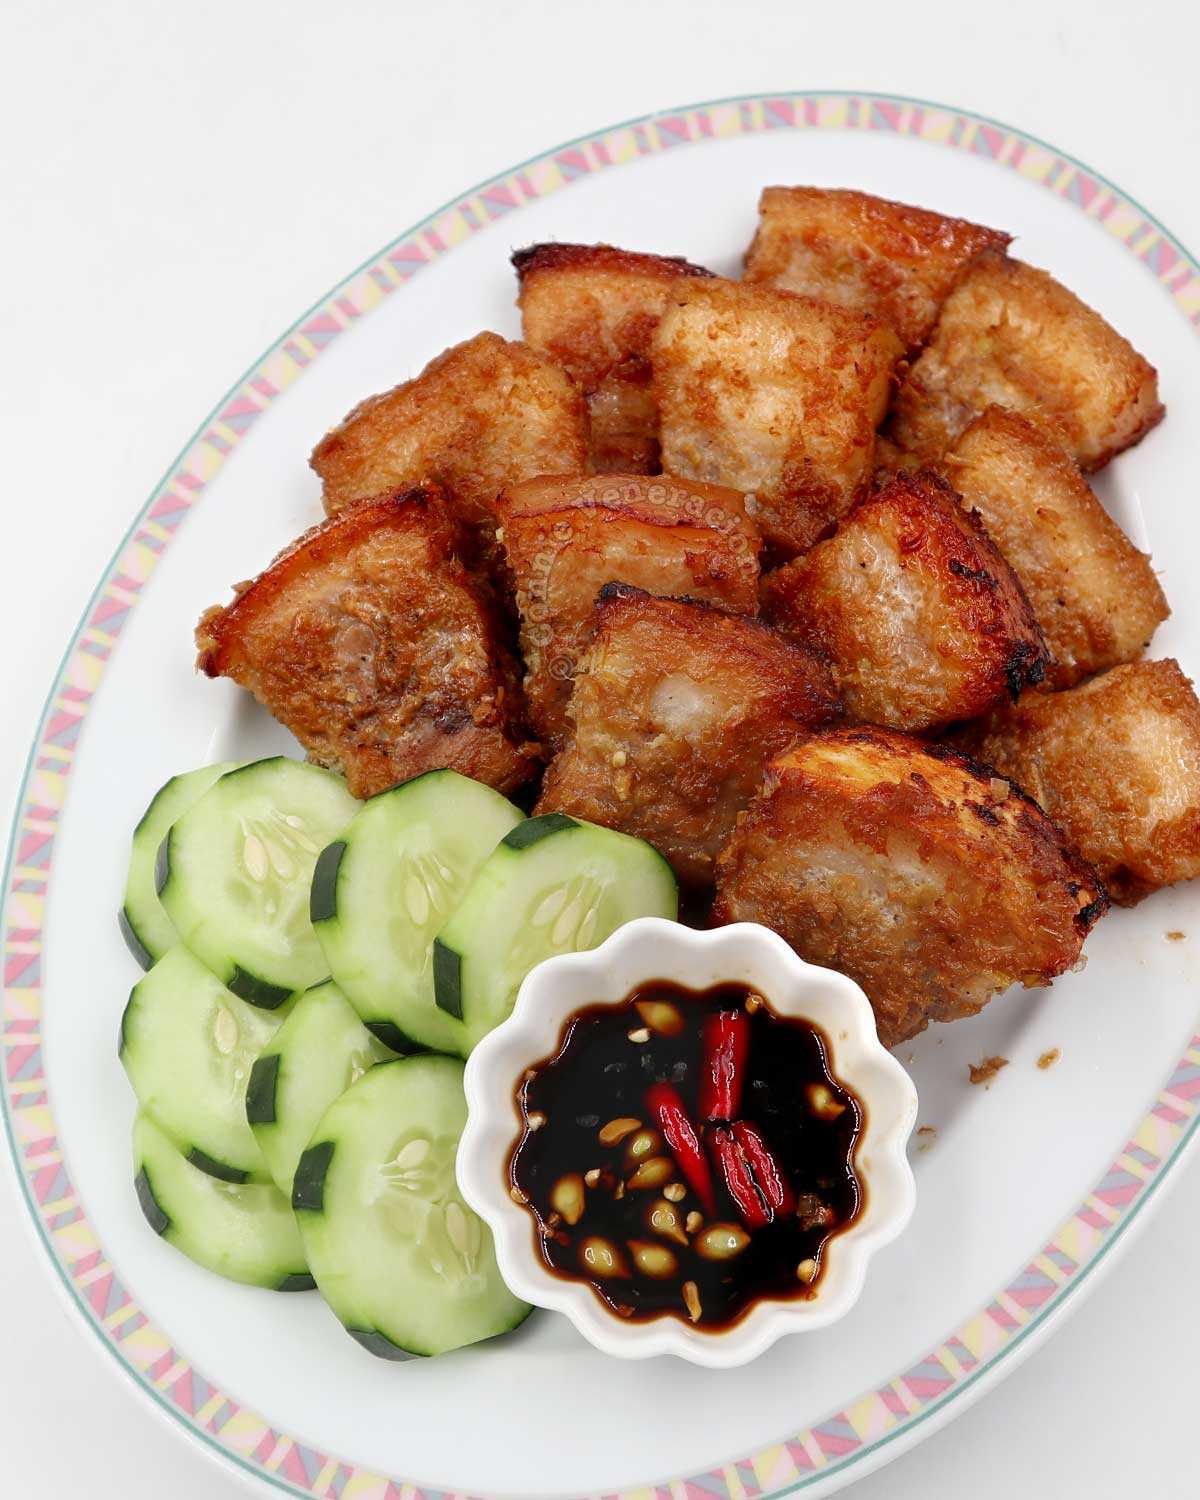 Vietnamese Grilled Lemongrass Pork Belly with Dipping Sauce and Cucumber Slices